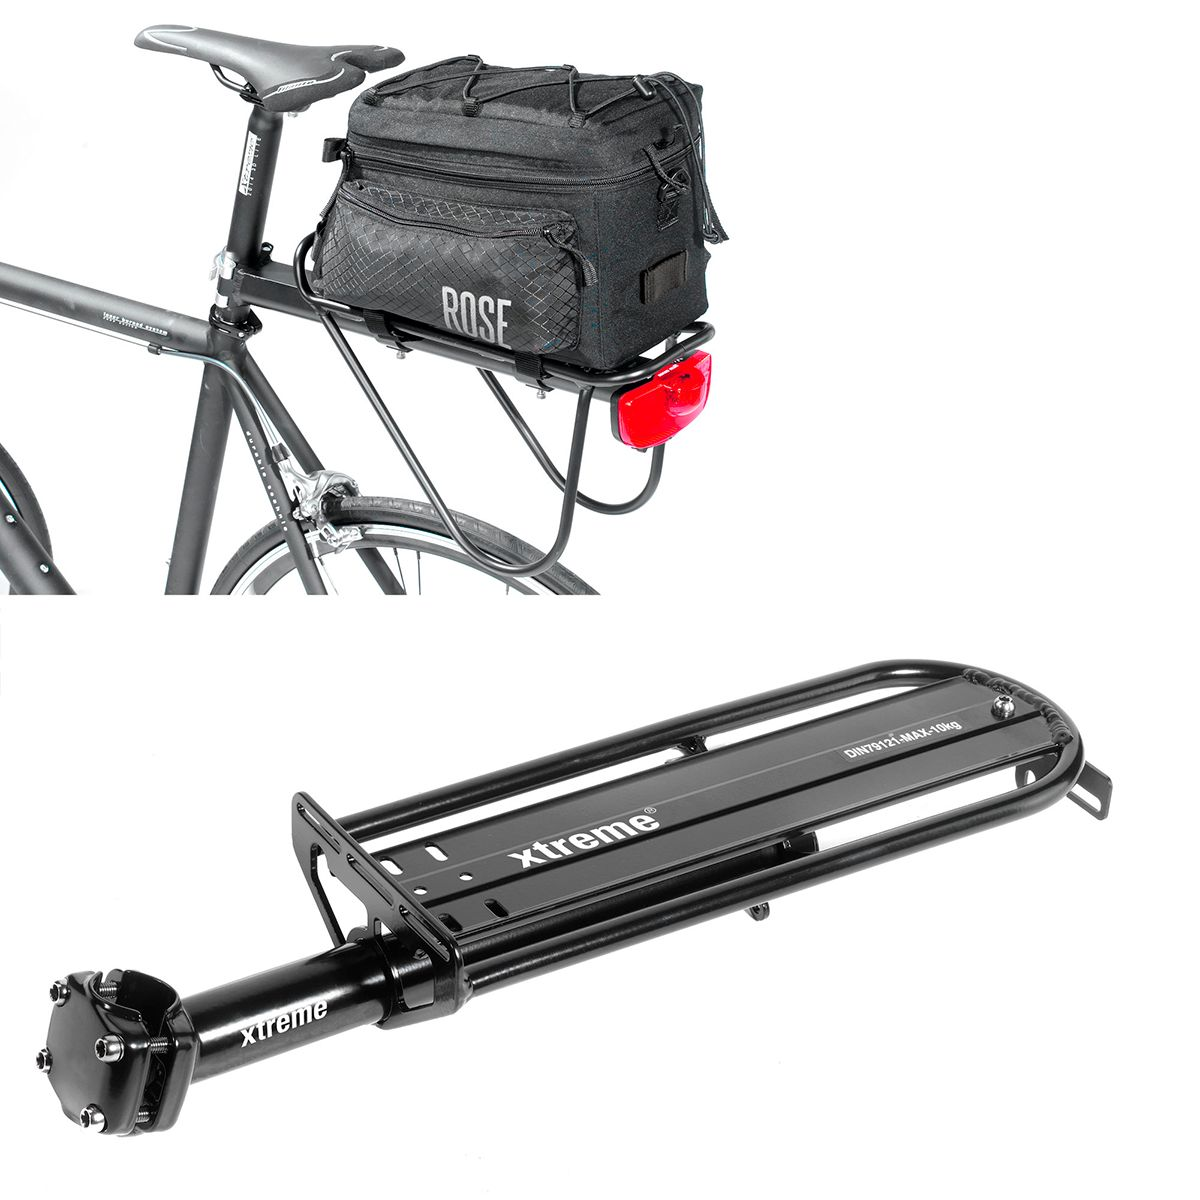 Xtreme Rack SP seatpost rack + Easybag